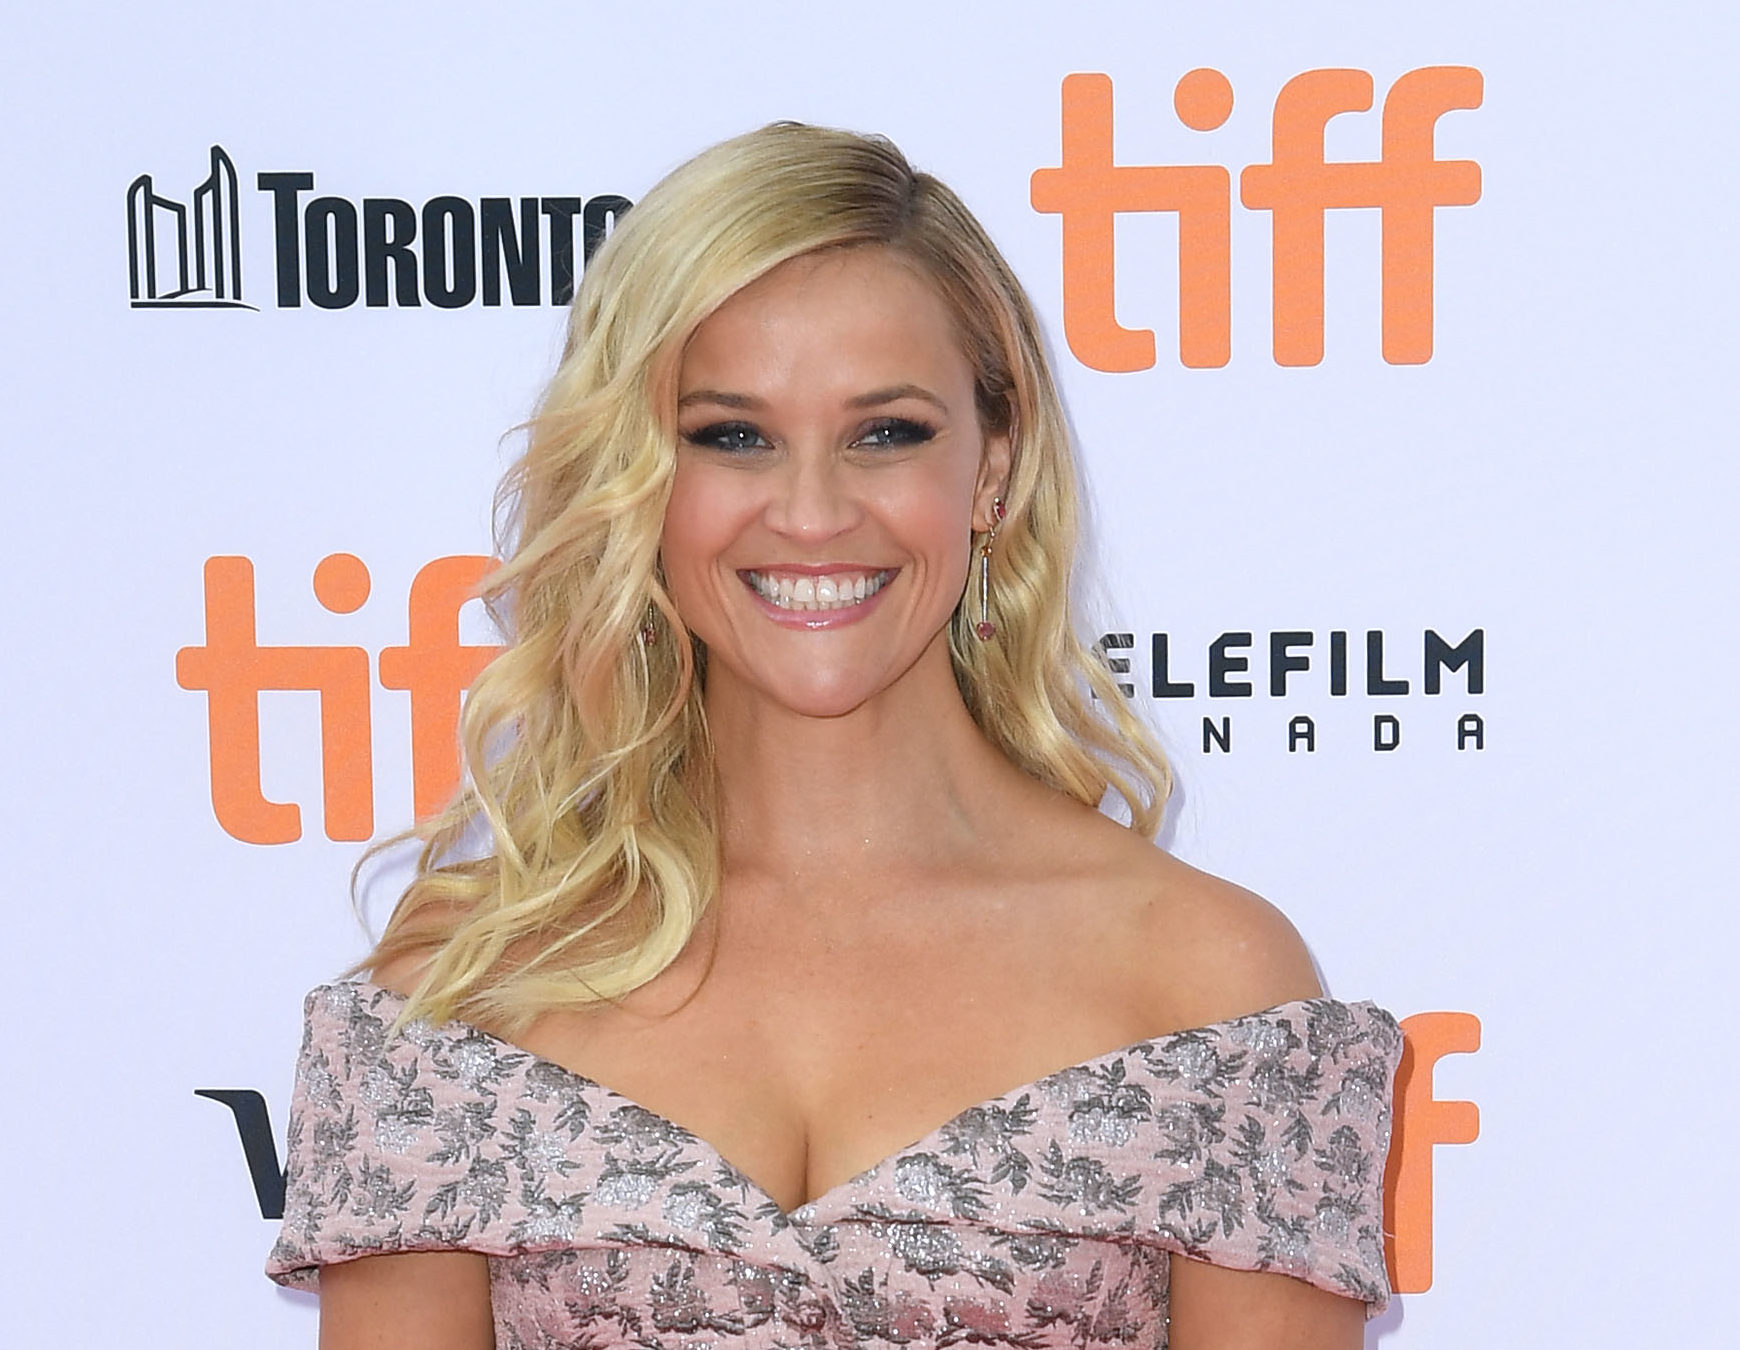 Reese Witherspoon wore a tee we desperately want and can actually afford (it's only $38!)